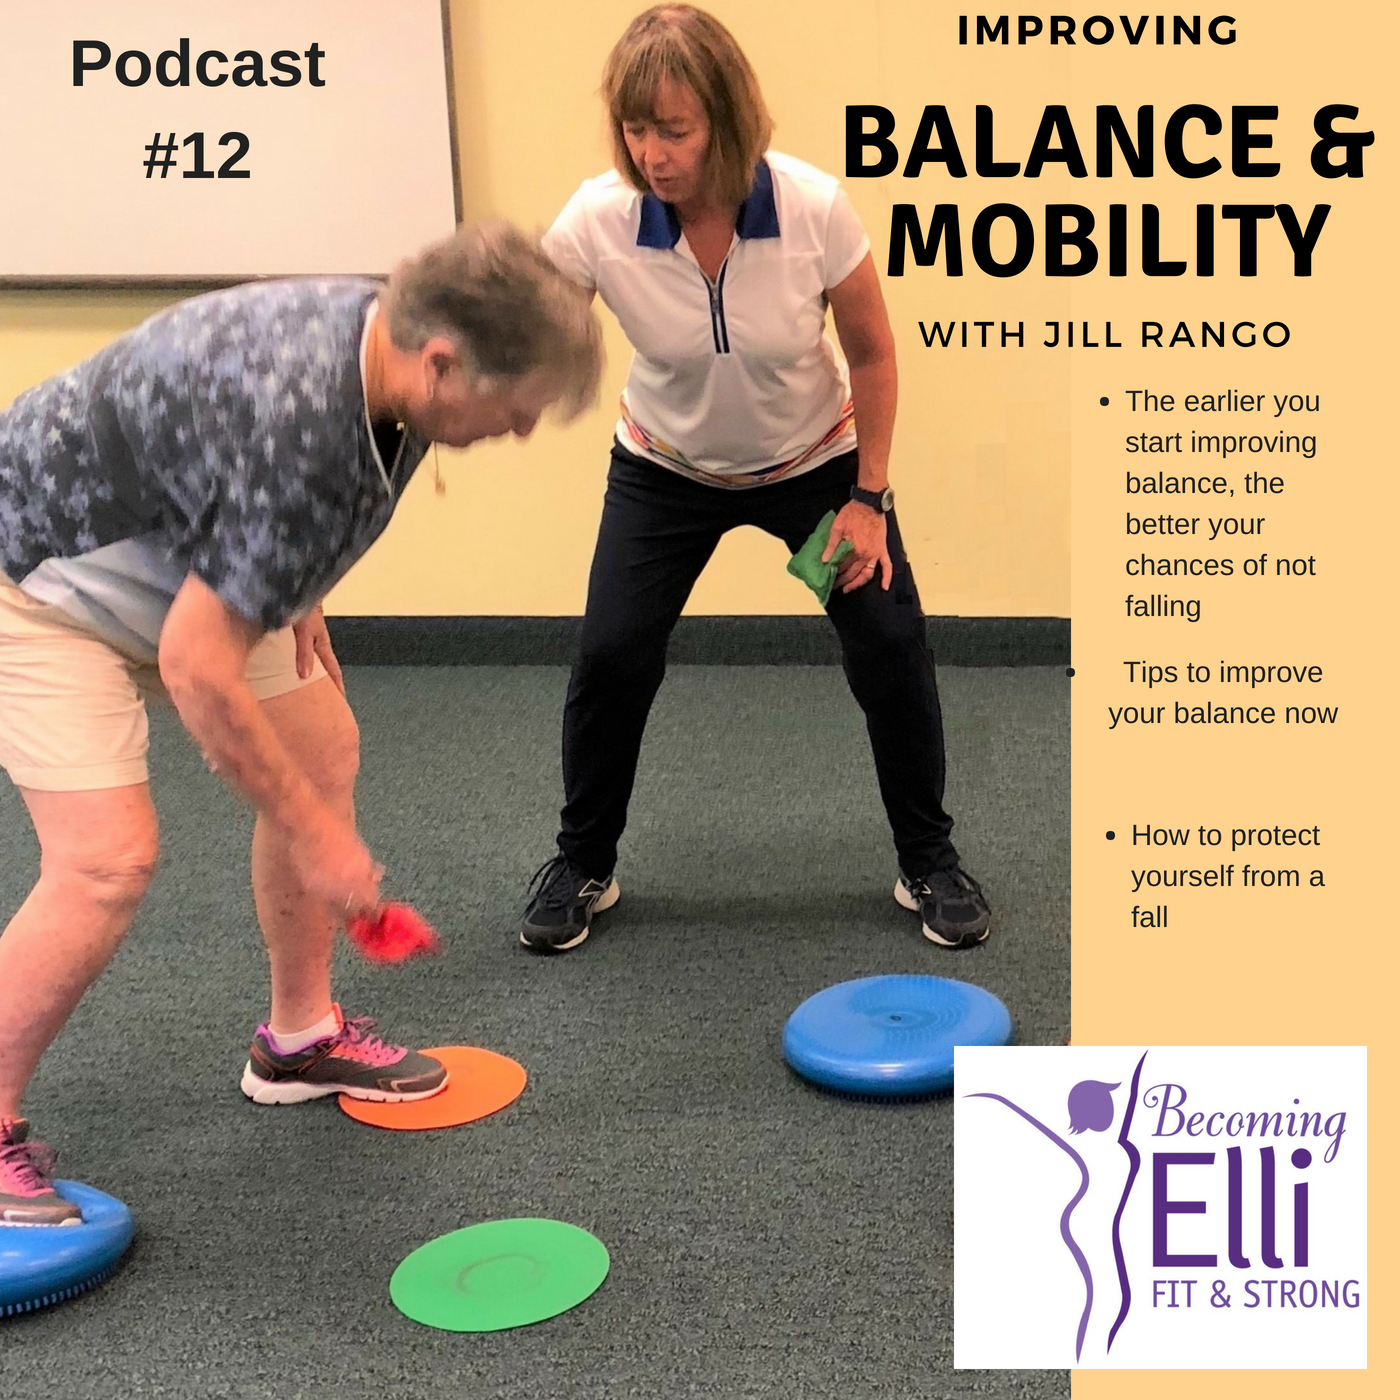 Balance and Mobility Expert Jill Rango Podcast